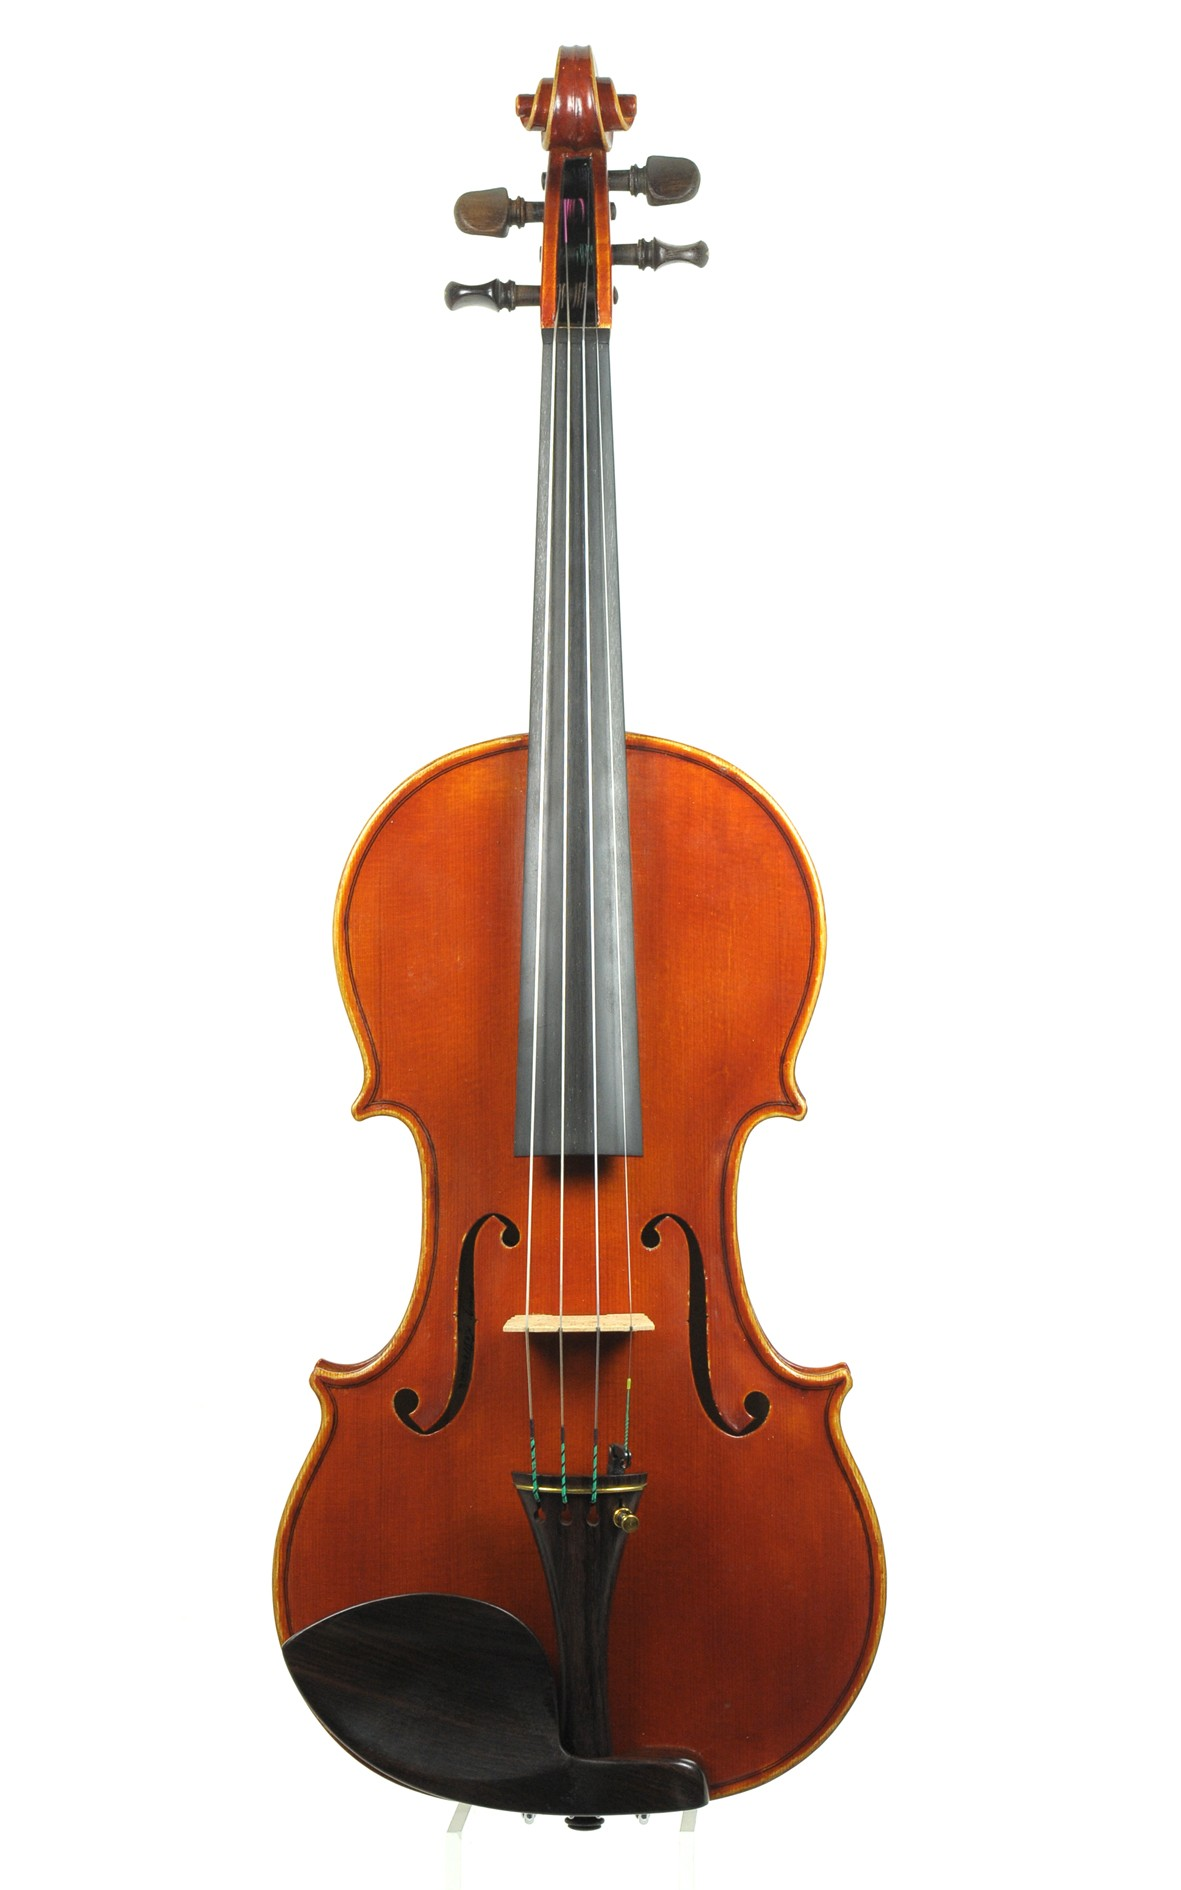 Italian violin in the Otello Bignami tradition - spruce top